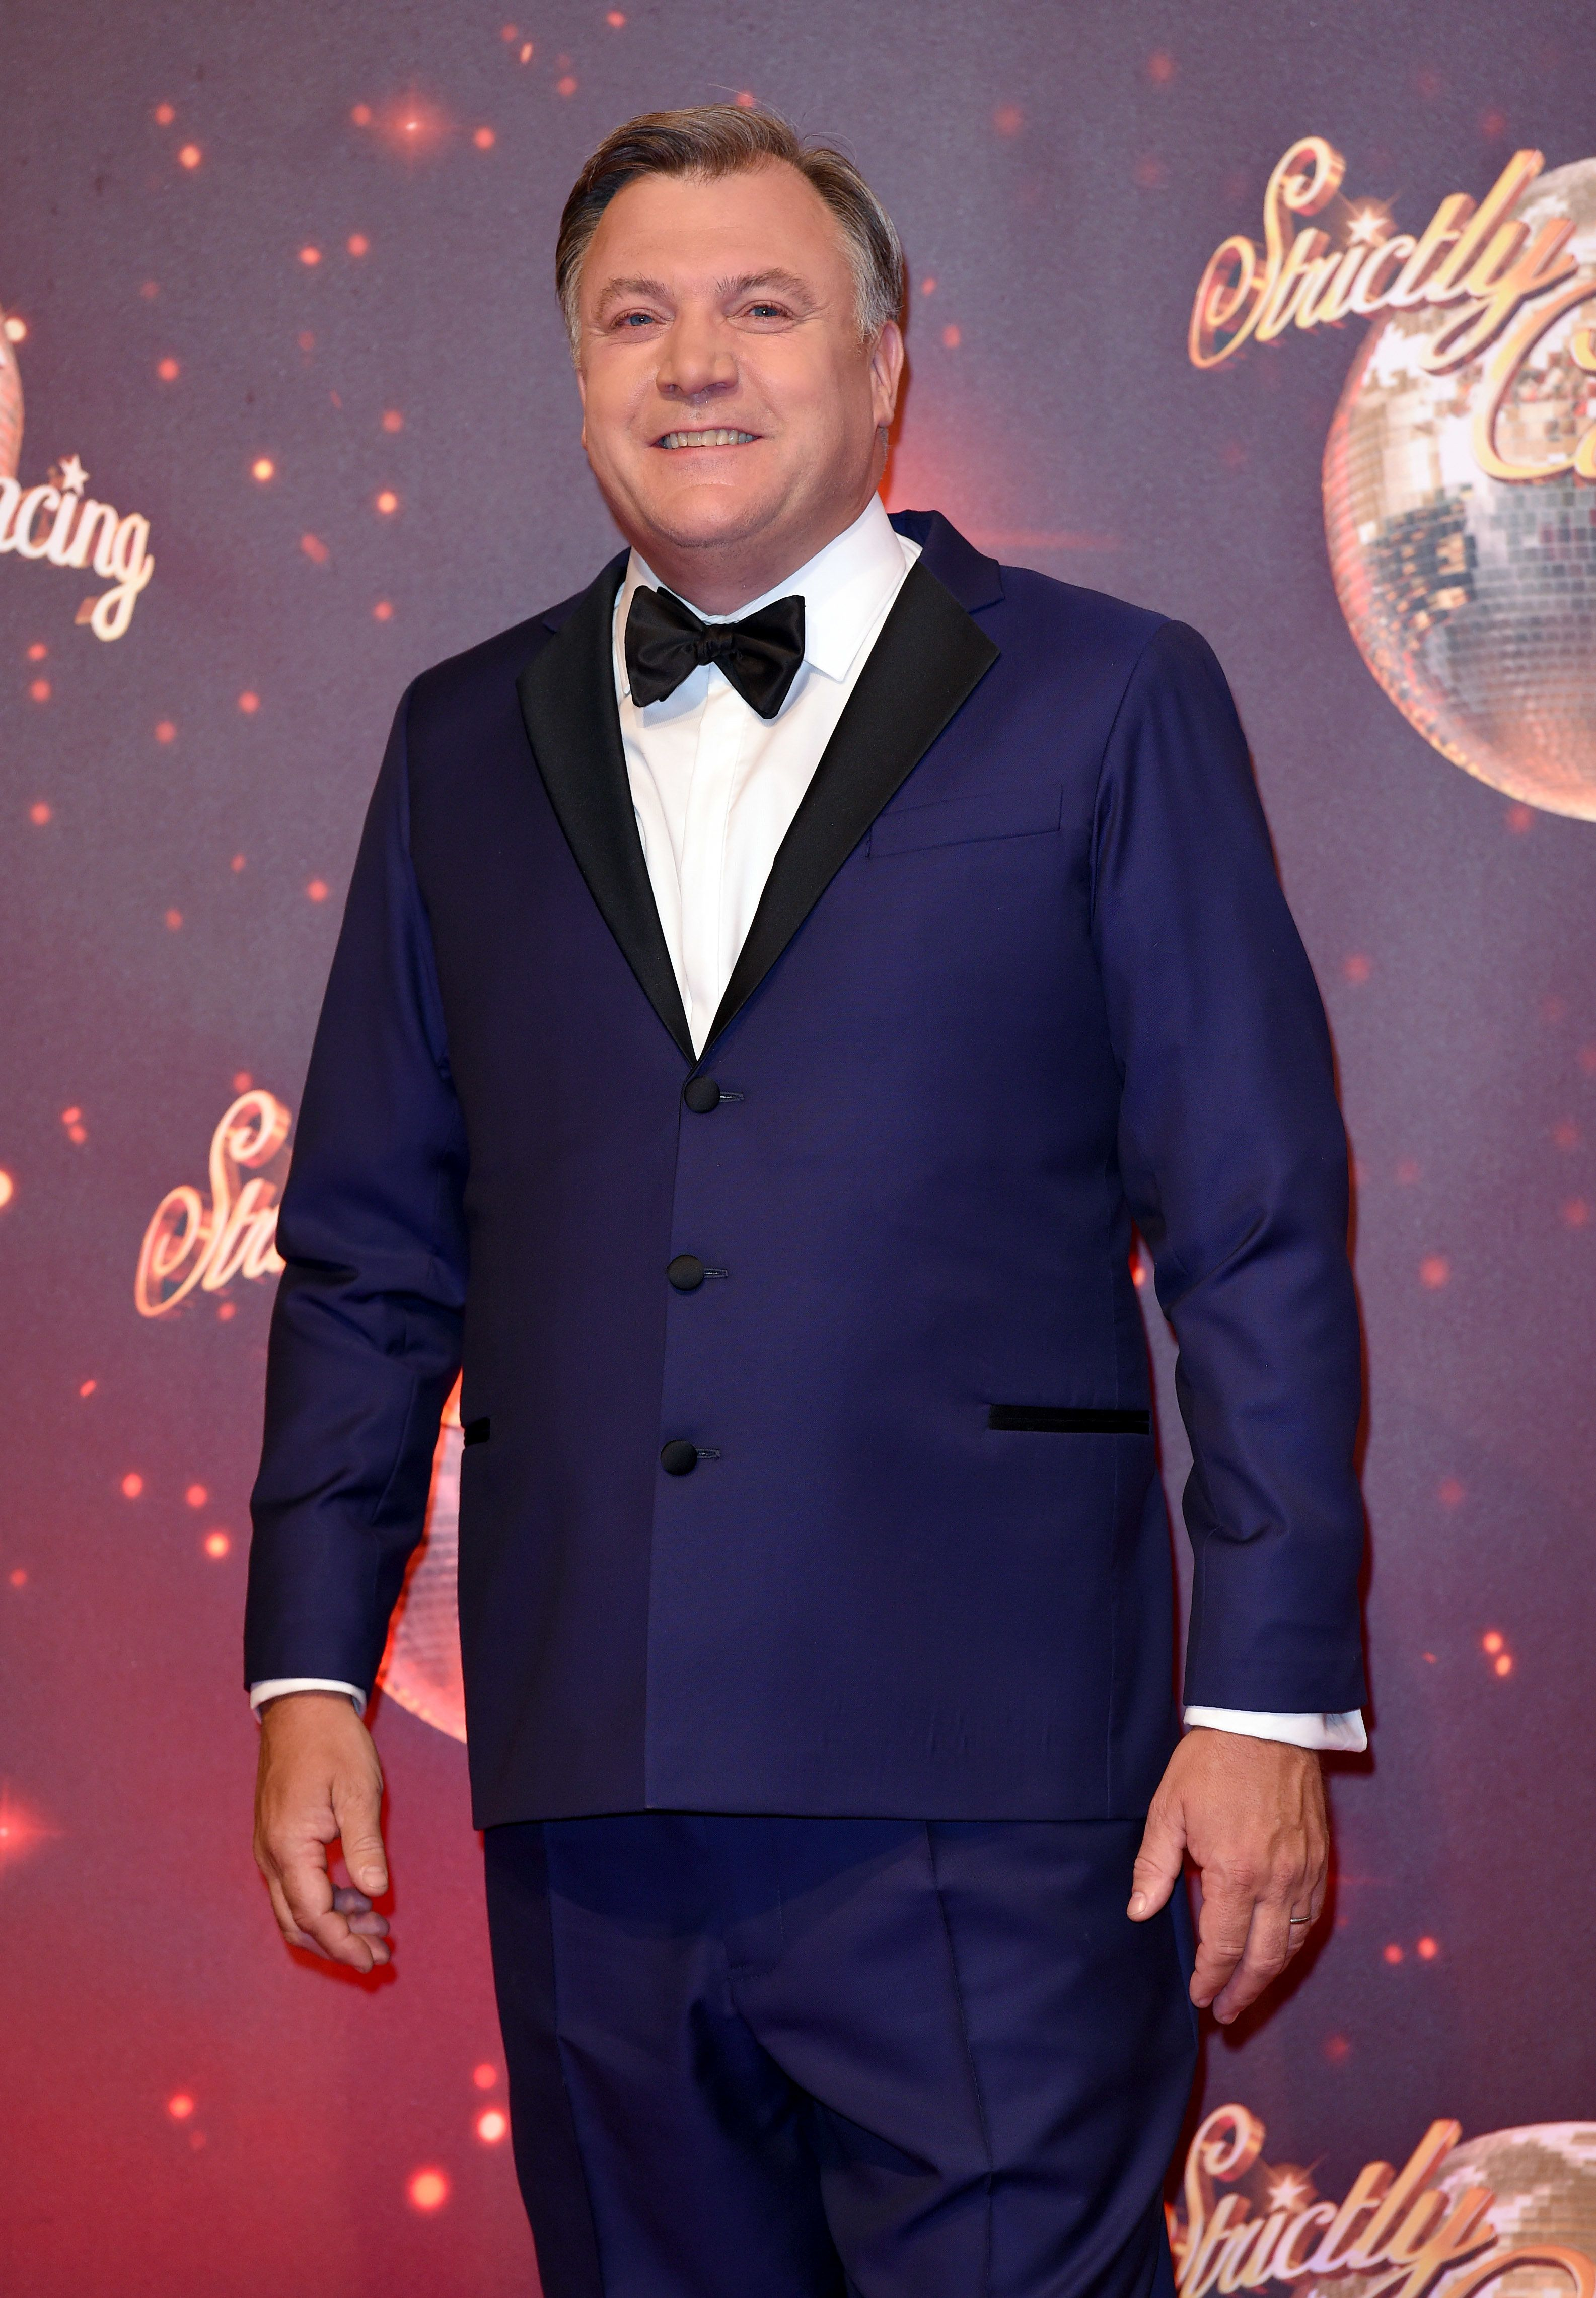 Ed Balls Claims 'Strictly Come Dancing' Can Help If You're Feeling Uneasy About Current